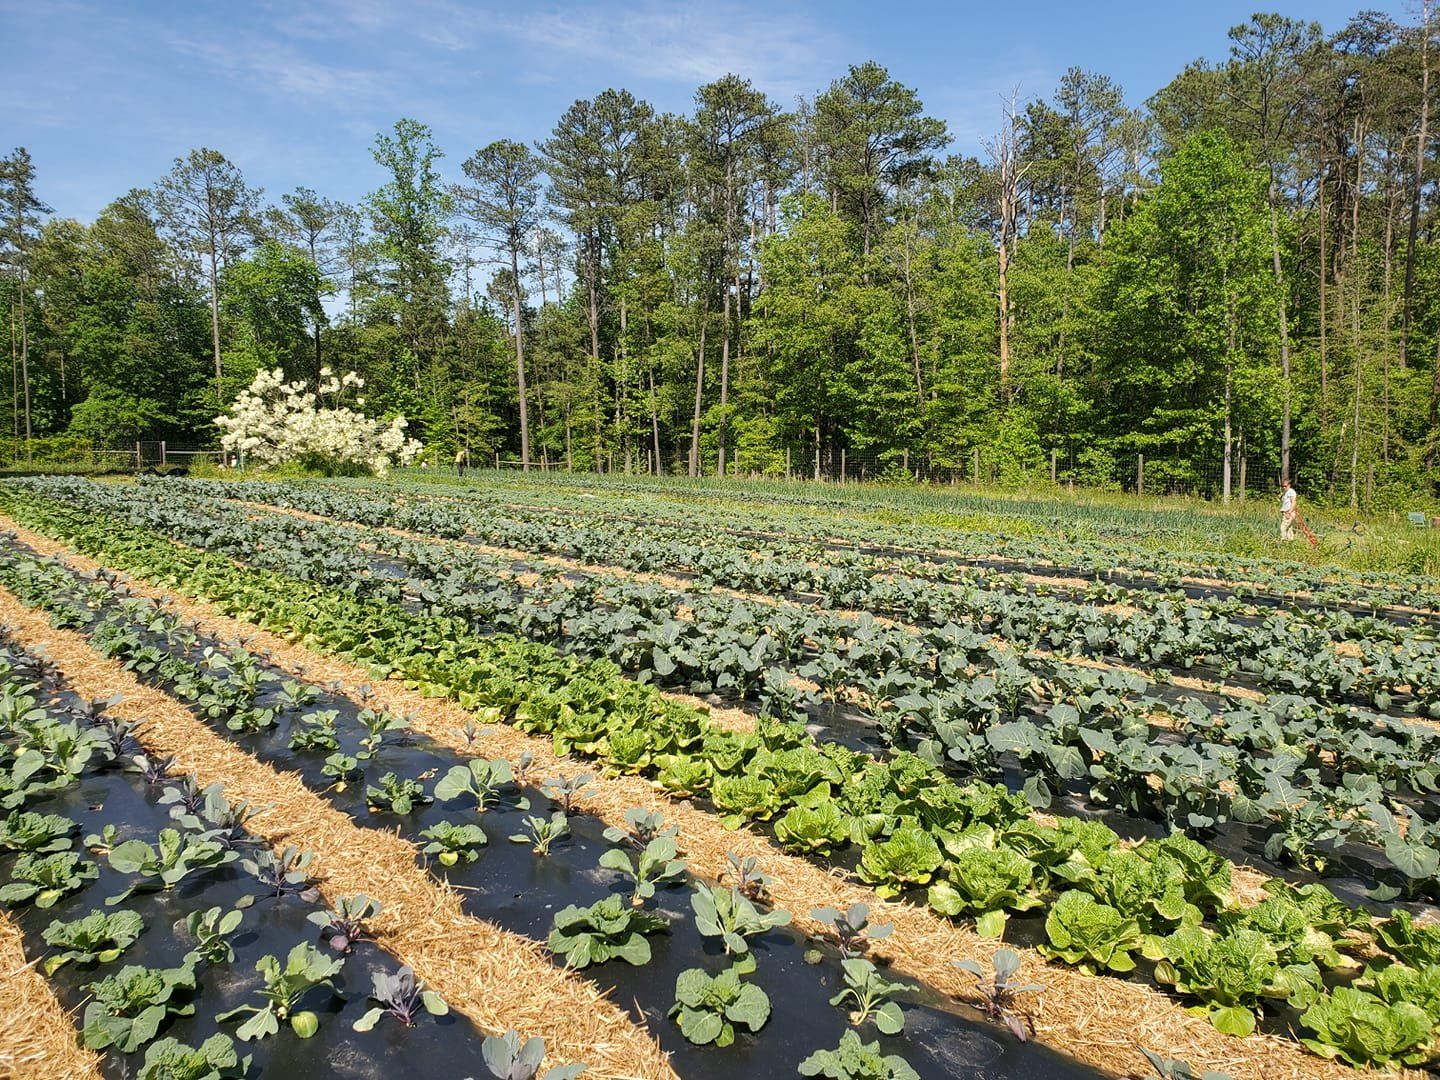 Next Happening: Farm Happenings for May 12, 2021